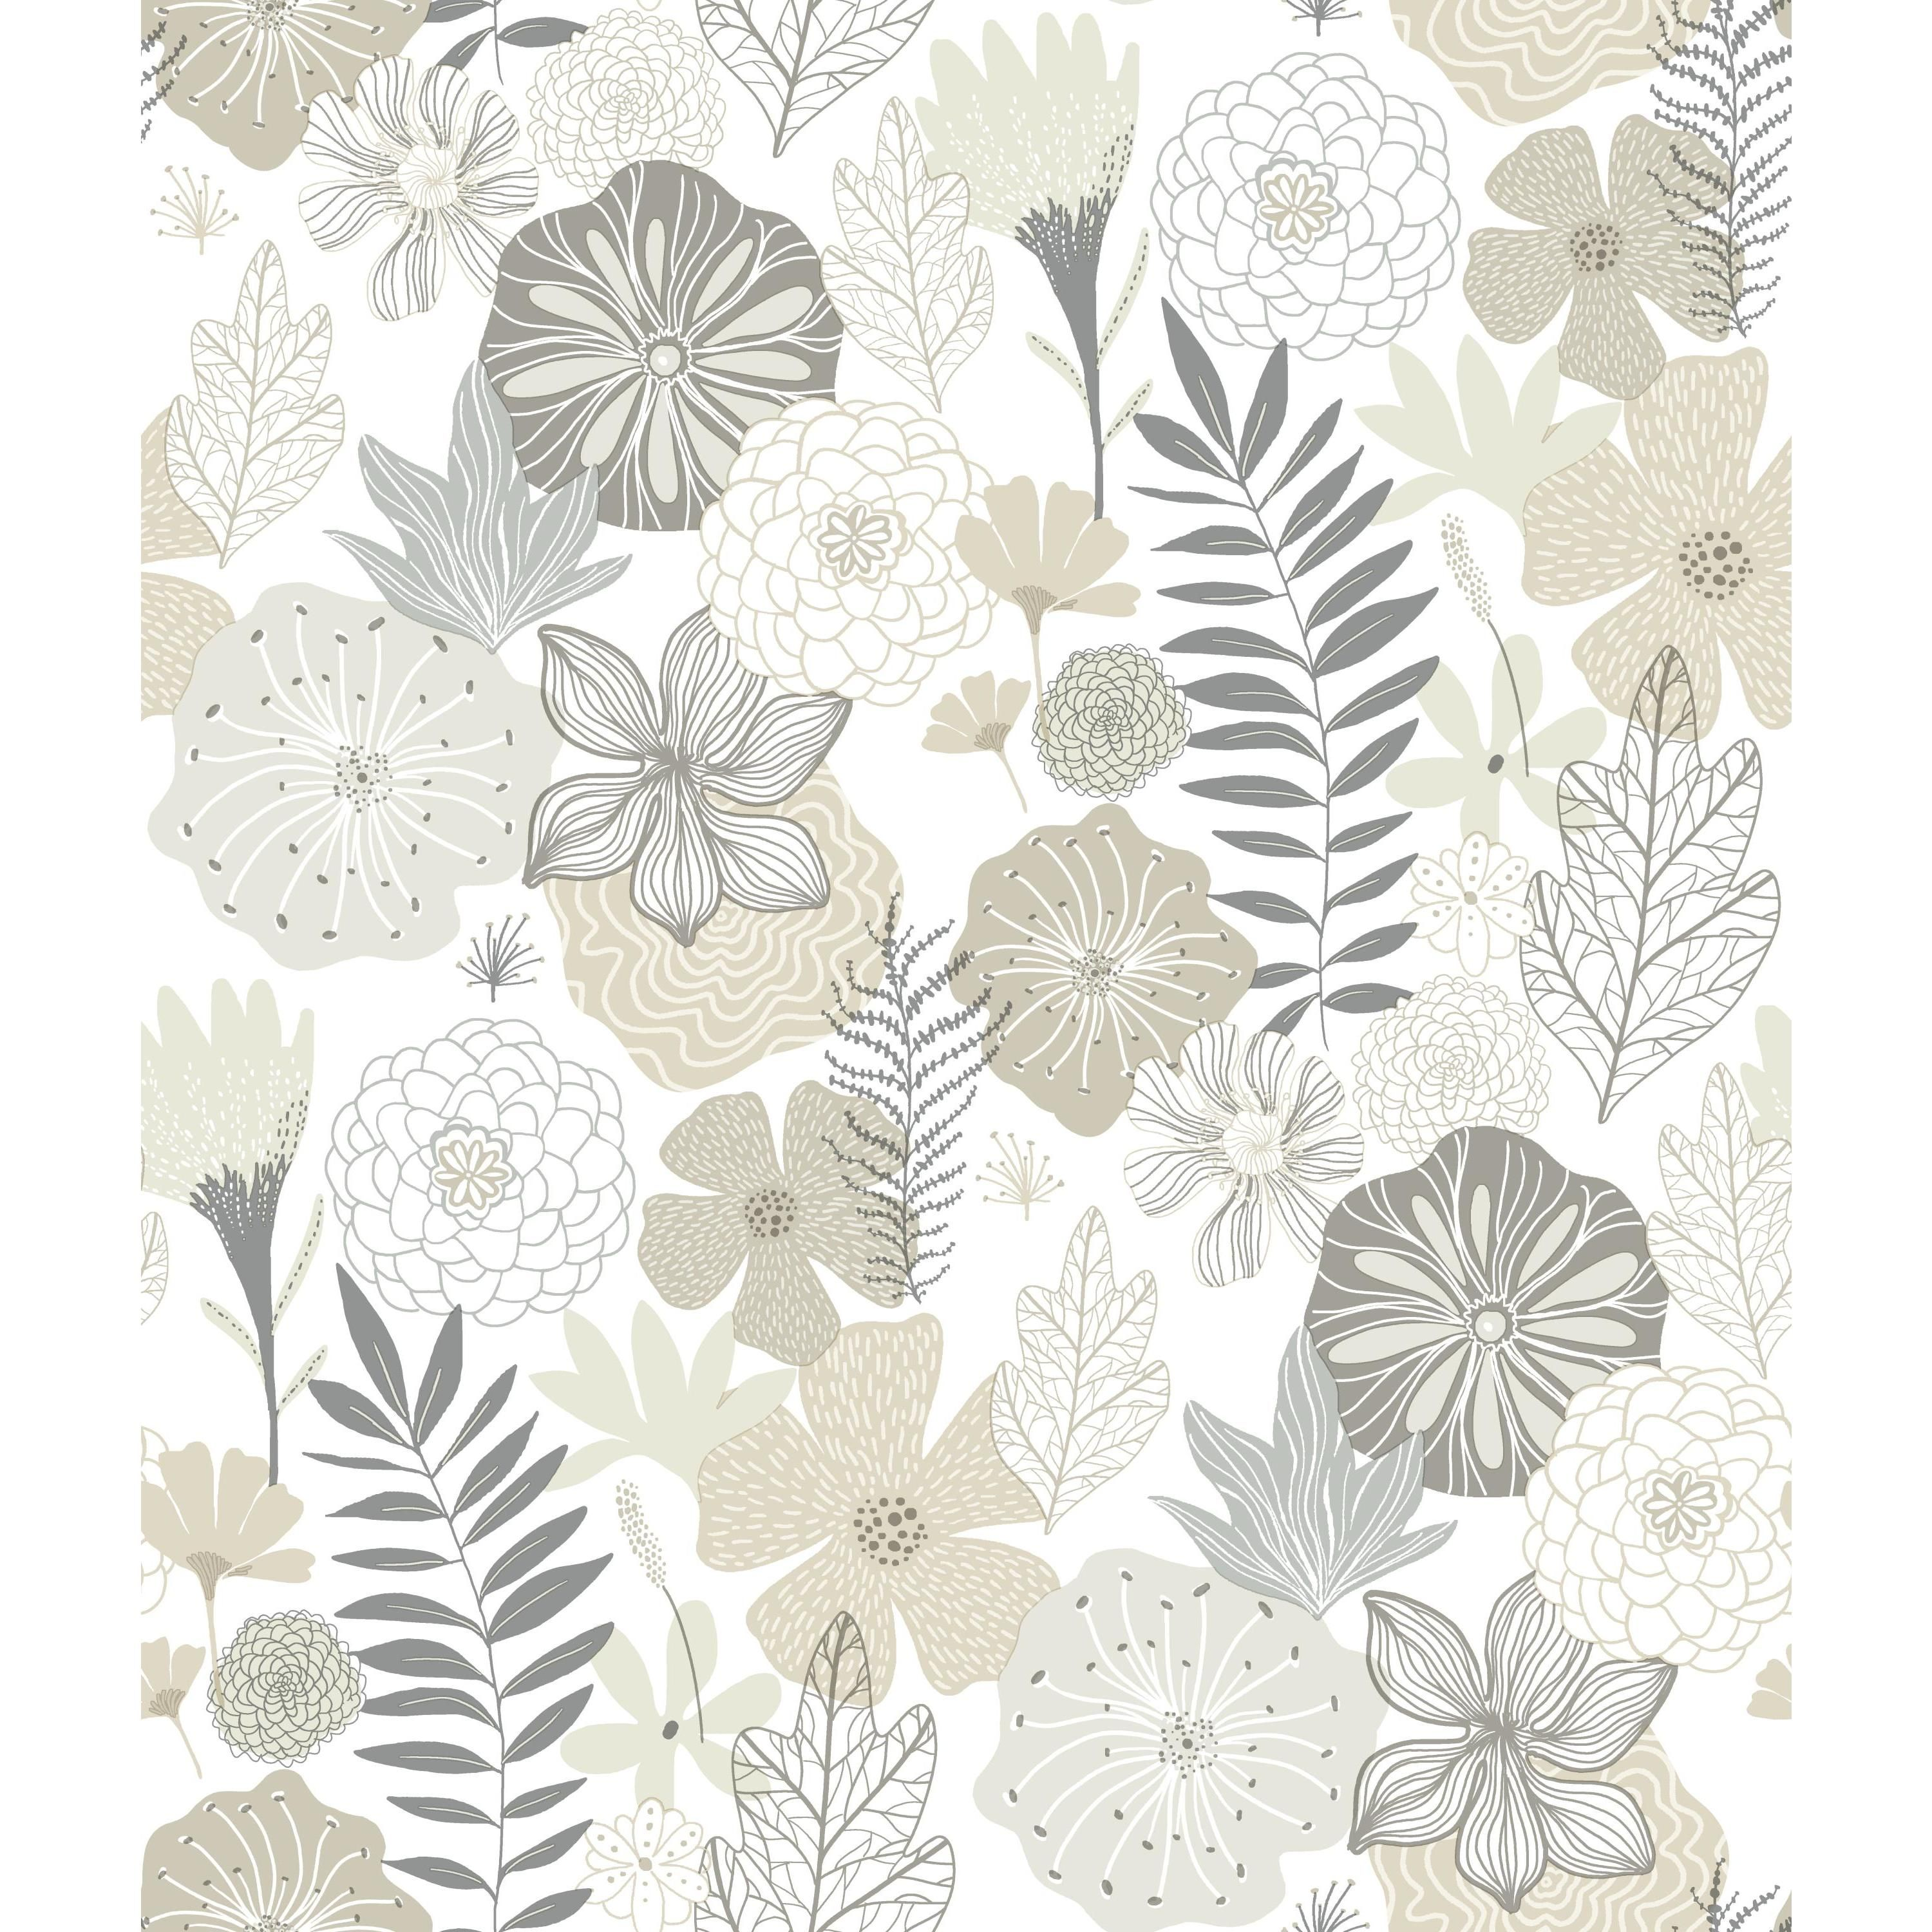 Roommates Perennial Blooms Peel And Stick Wallpaper Walmart Com Peel And Stick Wallpaper Vinyl Wallpaper Peelable Wallpaper